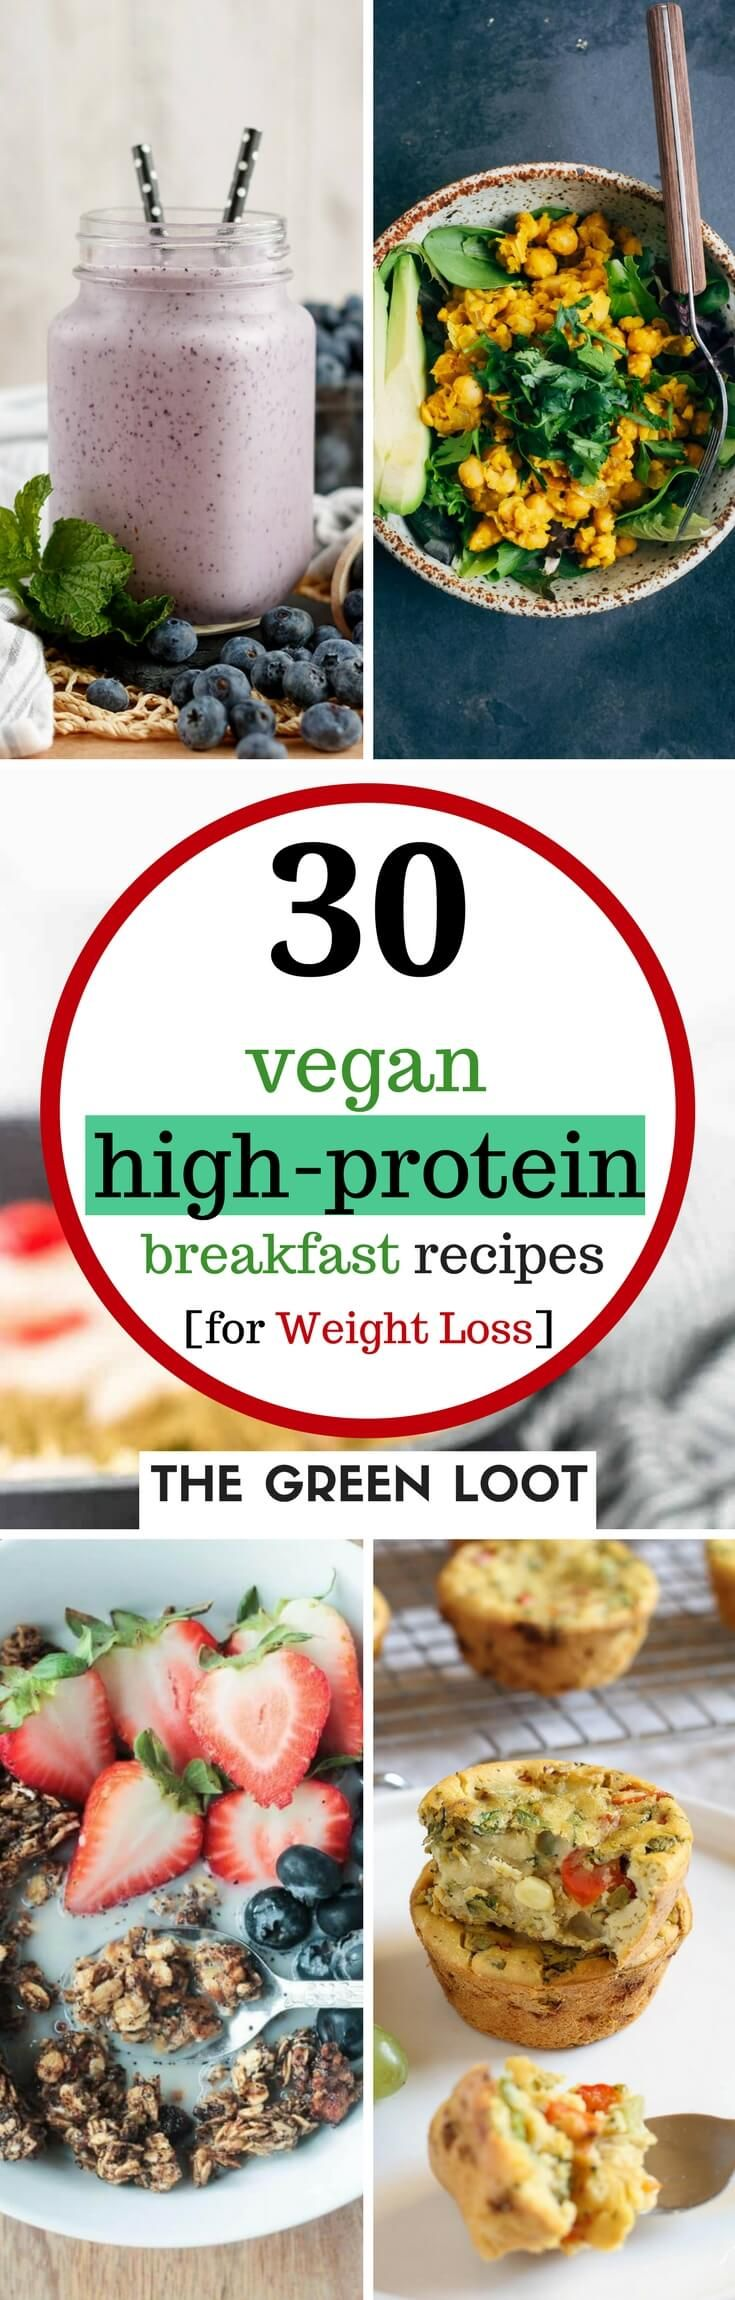 Vegan High-Protein Breakfast Recipes for Weight Loss are the best way to start your day and be full until Lunch. These healthy and easy vegan recipes are plant-based and dairy-free. They burn fat to help you lose weight and get fit. Eat these tasty meals to shed those unwanted pounds easily! | The Green Loot #vegan #protein